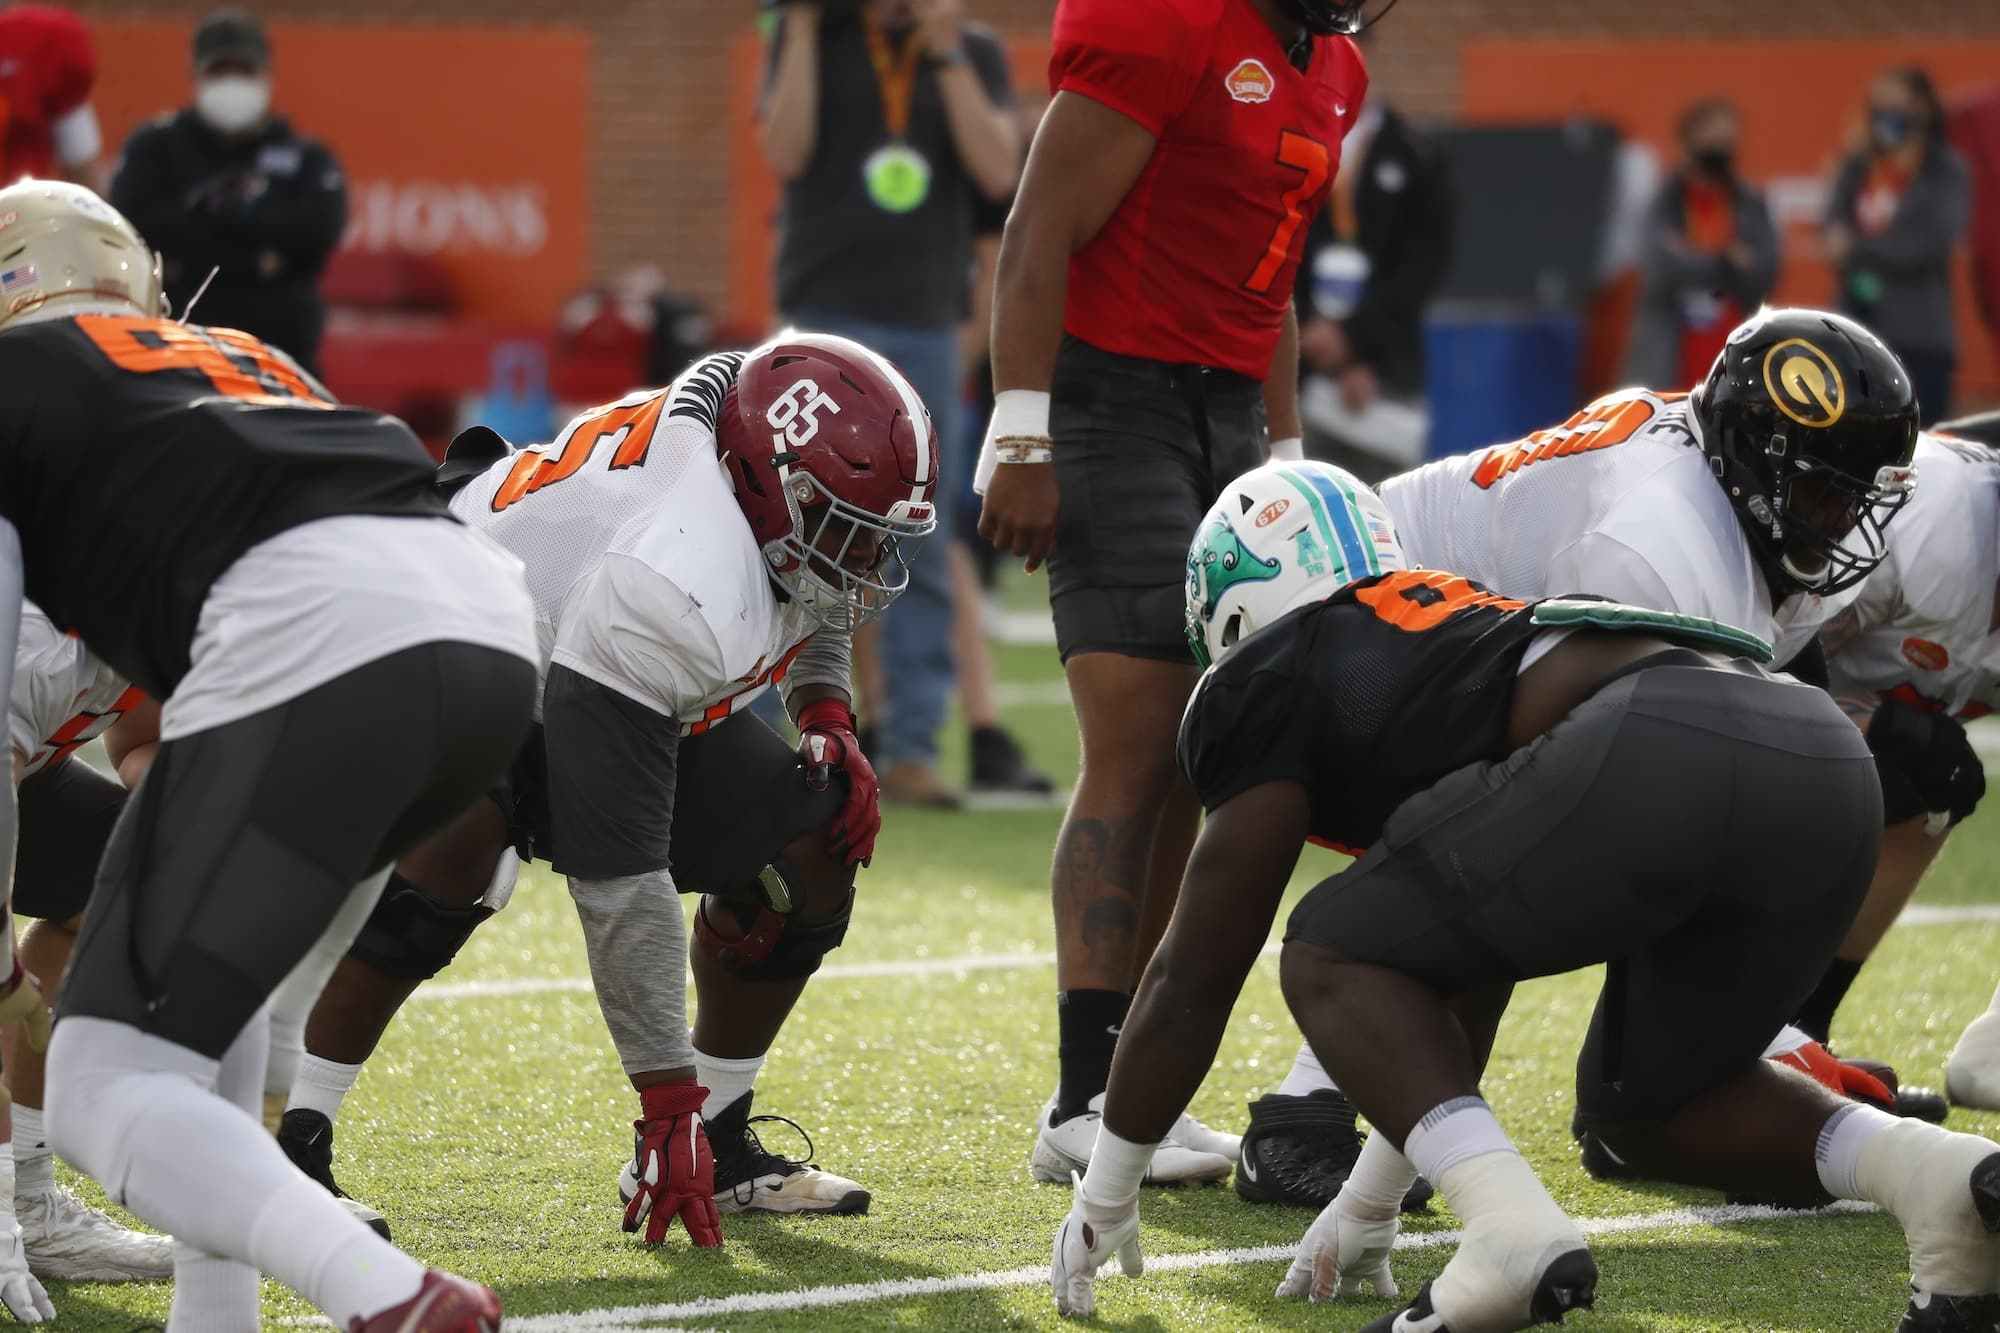 Senior Bowl Standouts The Chargers Should Consider